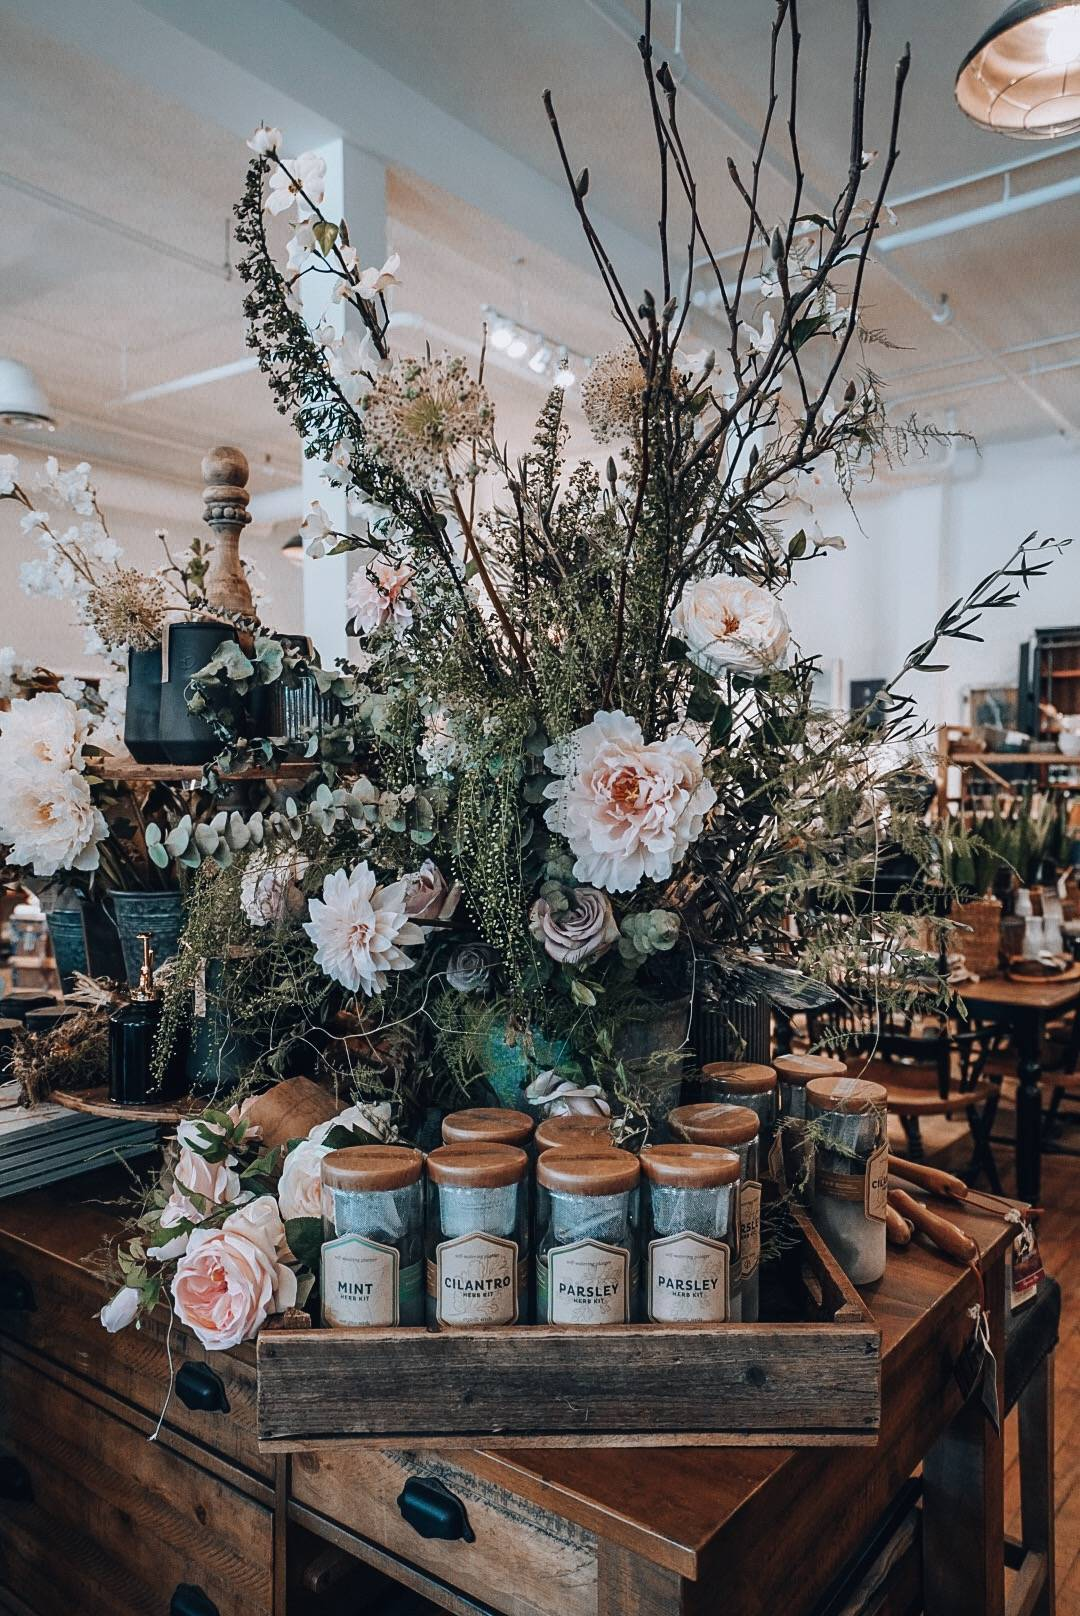 Planning a trip to Saskatoon? Check out this guide covering everything to do, see and eat in Saskatoon including a stop at Anthology in the heart of Downtown Saskatoon. #Shopping #interior design, #explorecanada